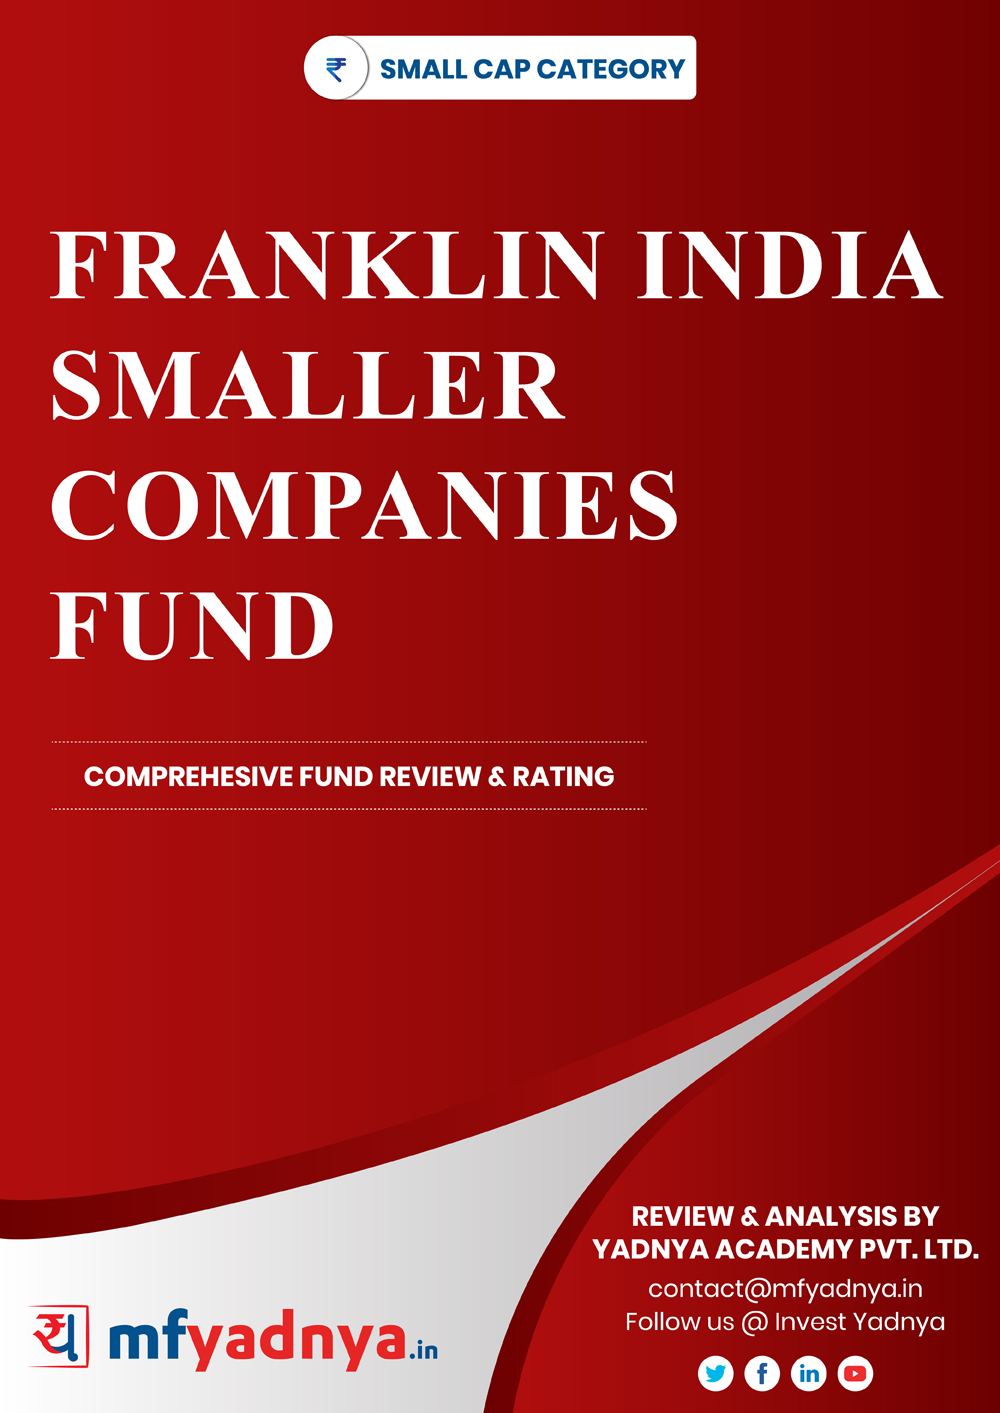 This e-book offers a comprehensive mutual fund review of Franklin India smaller companies fund for small-cap category. It reviews the fund's return, ratio, allocation etc. ✔ Detailed Mutual Fund Analysis ✔ Latest Research Reports